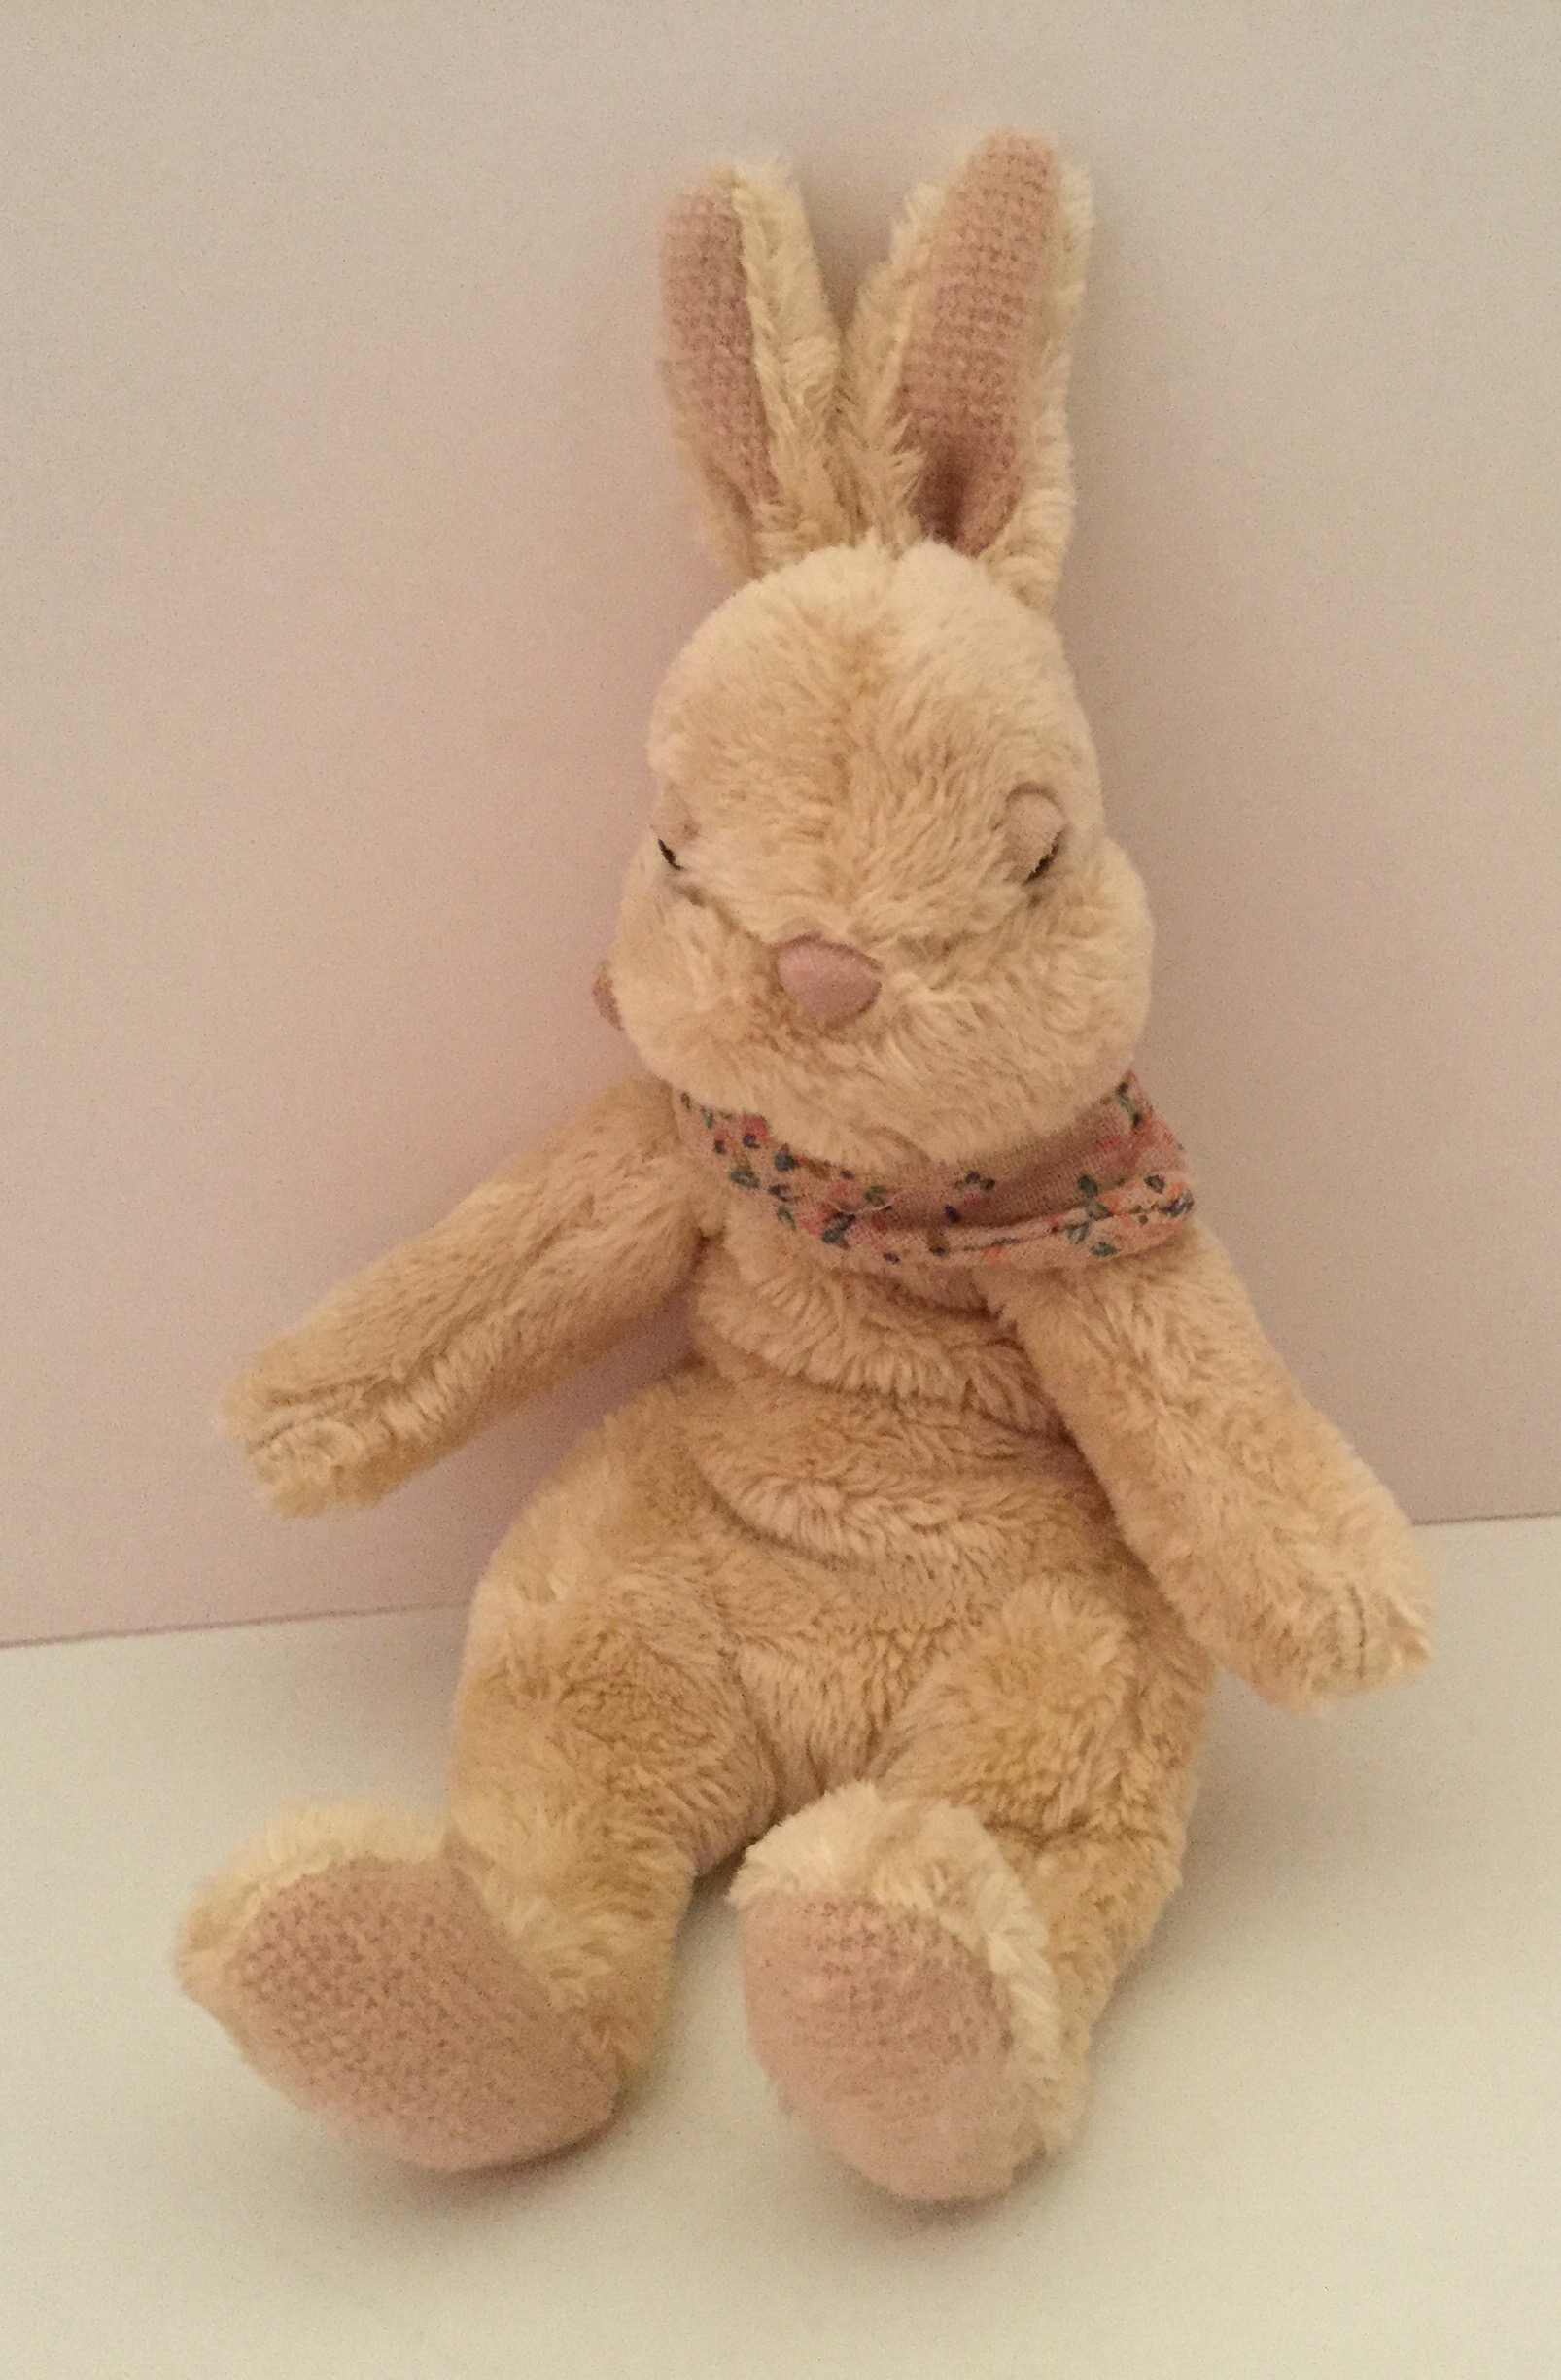 New bunny from Laurie ... the cutest ever!